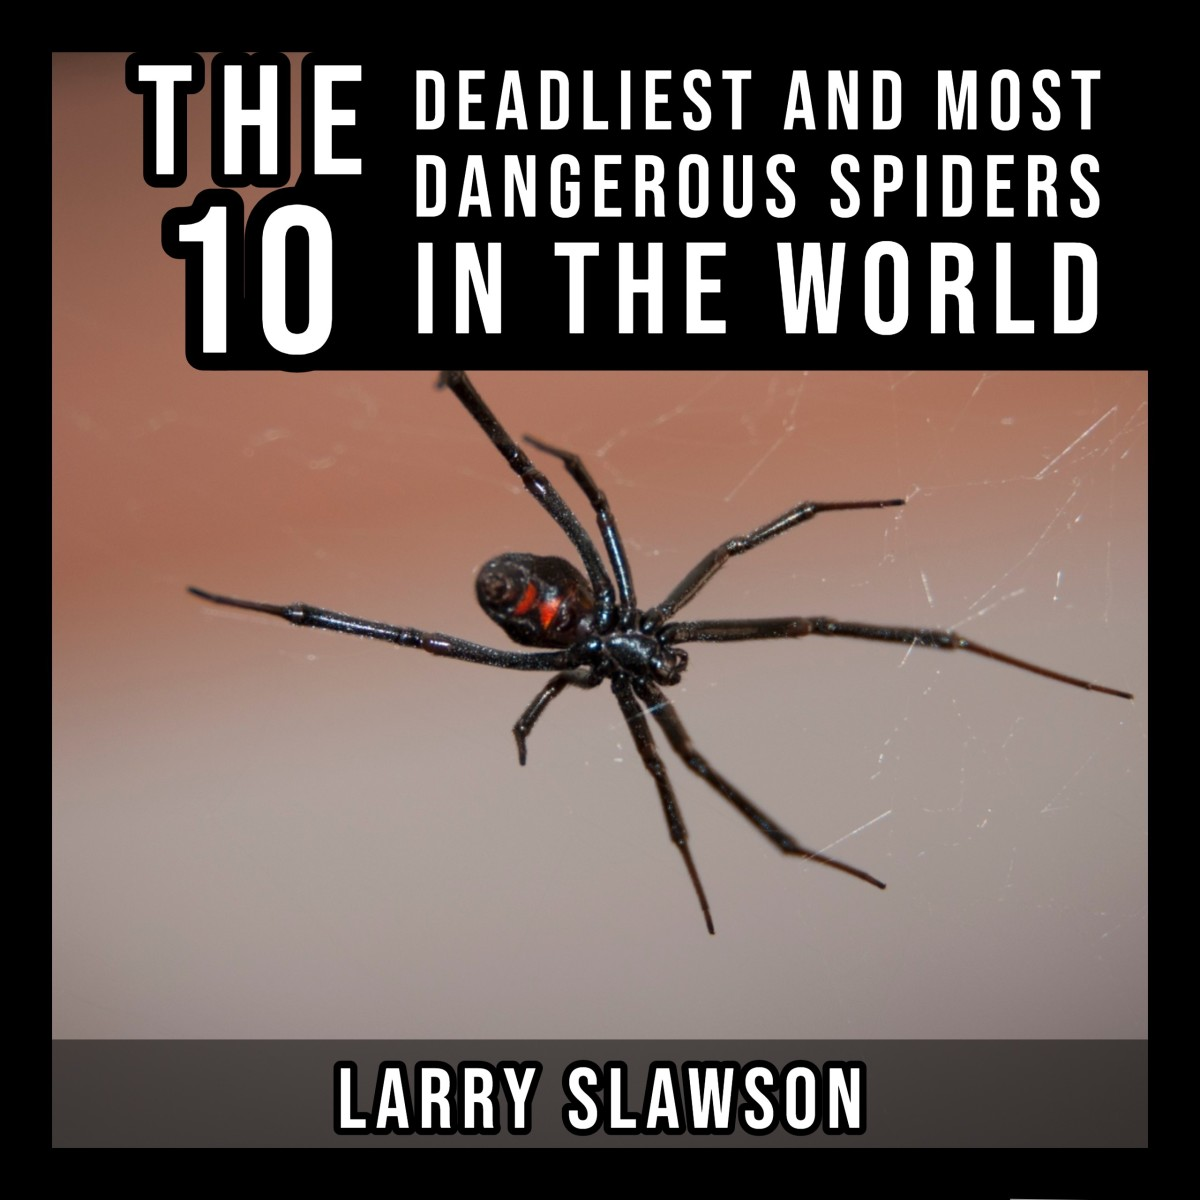 From the Black Widow to the Brown Recluse, this article ranks the 10 deadliest spiders in the world.